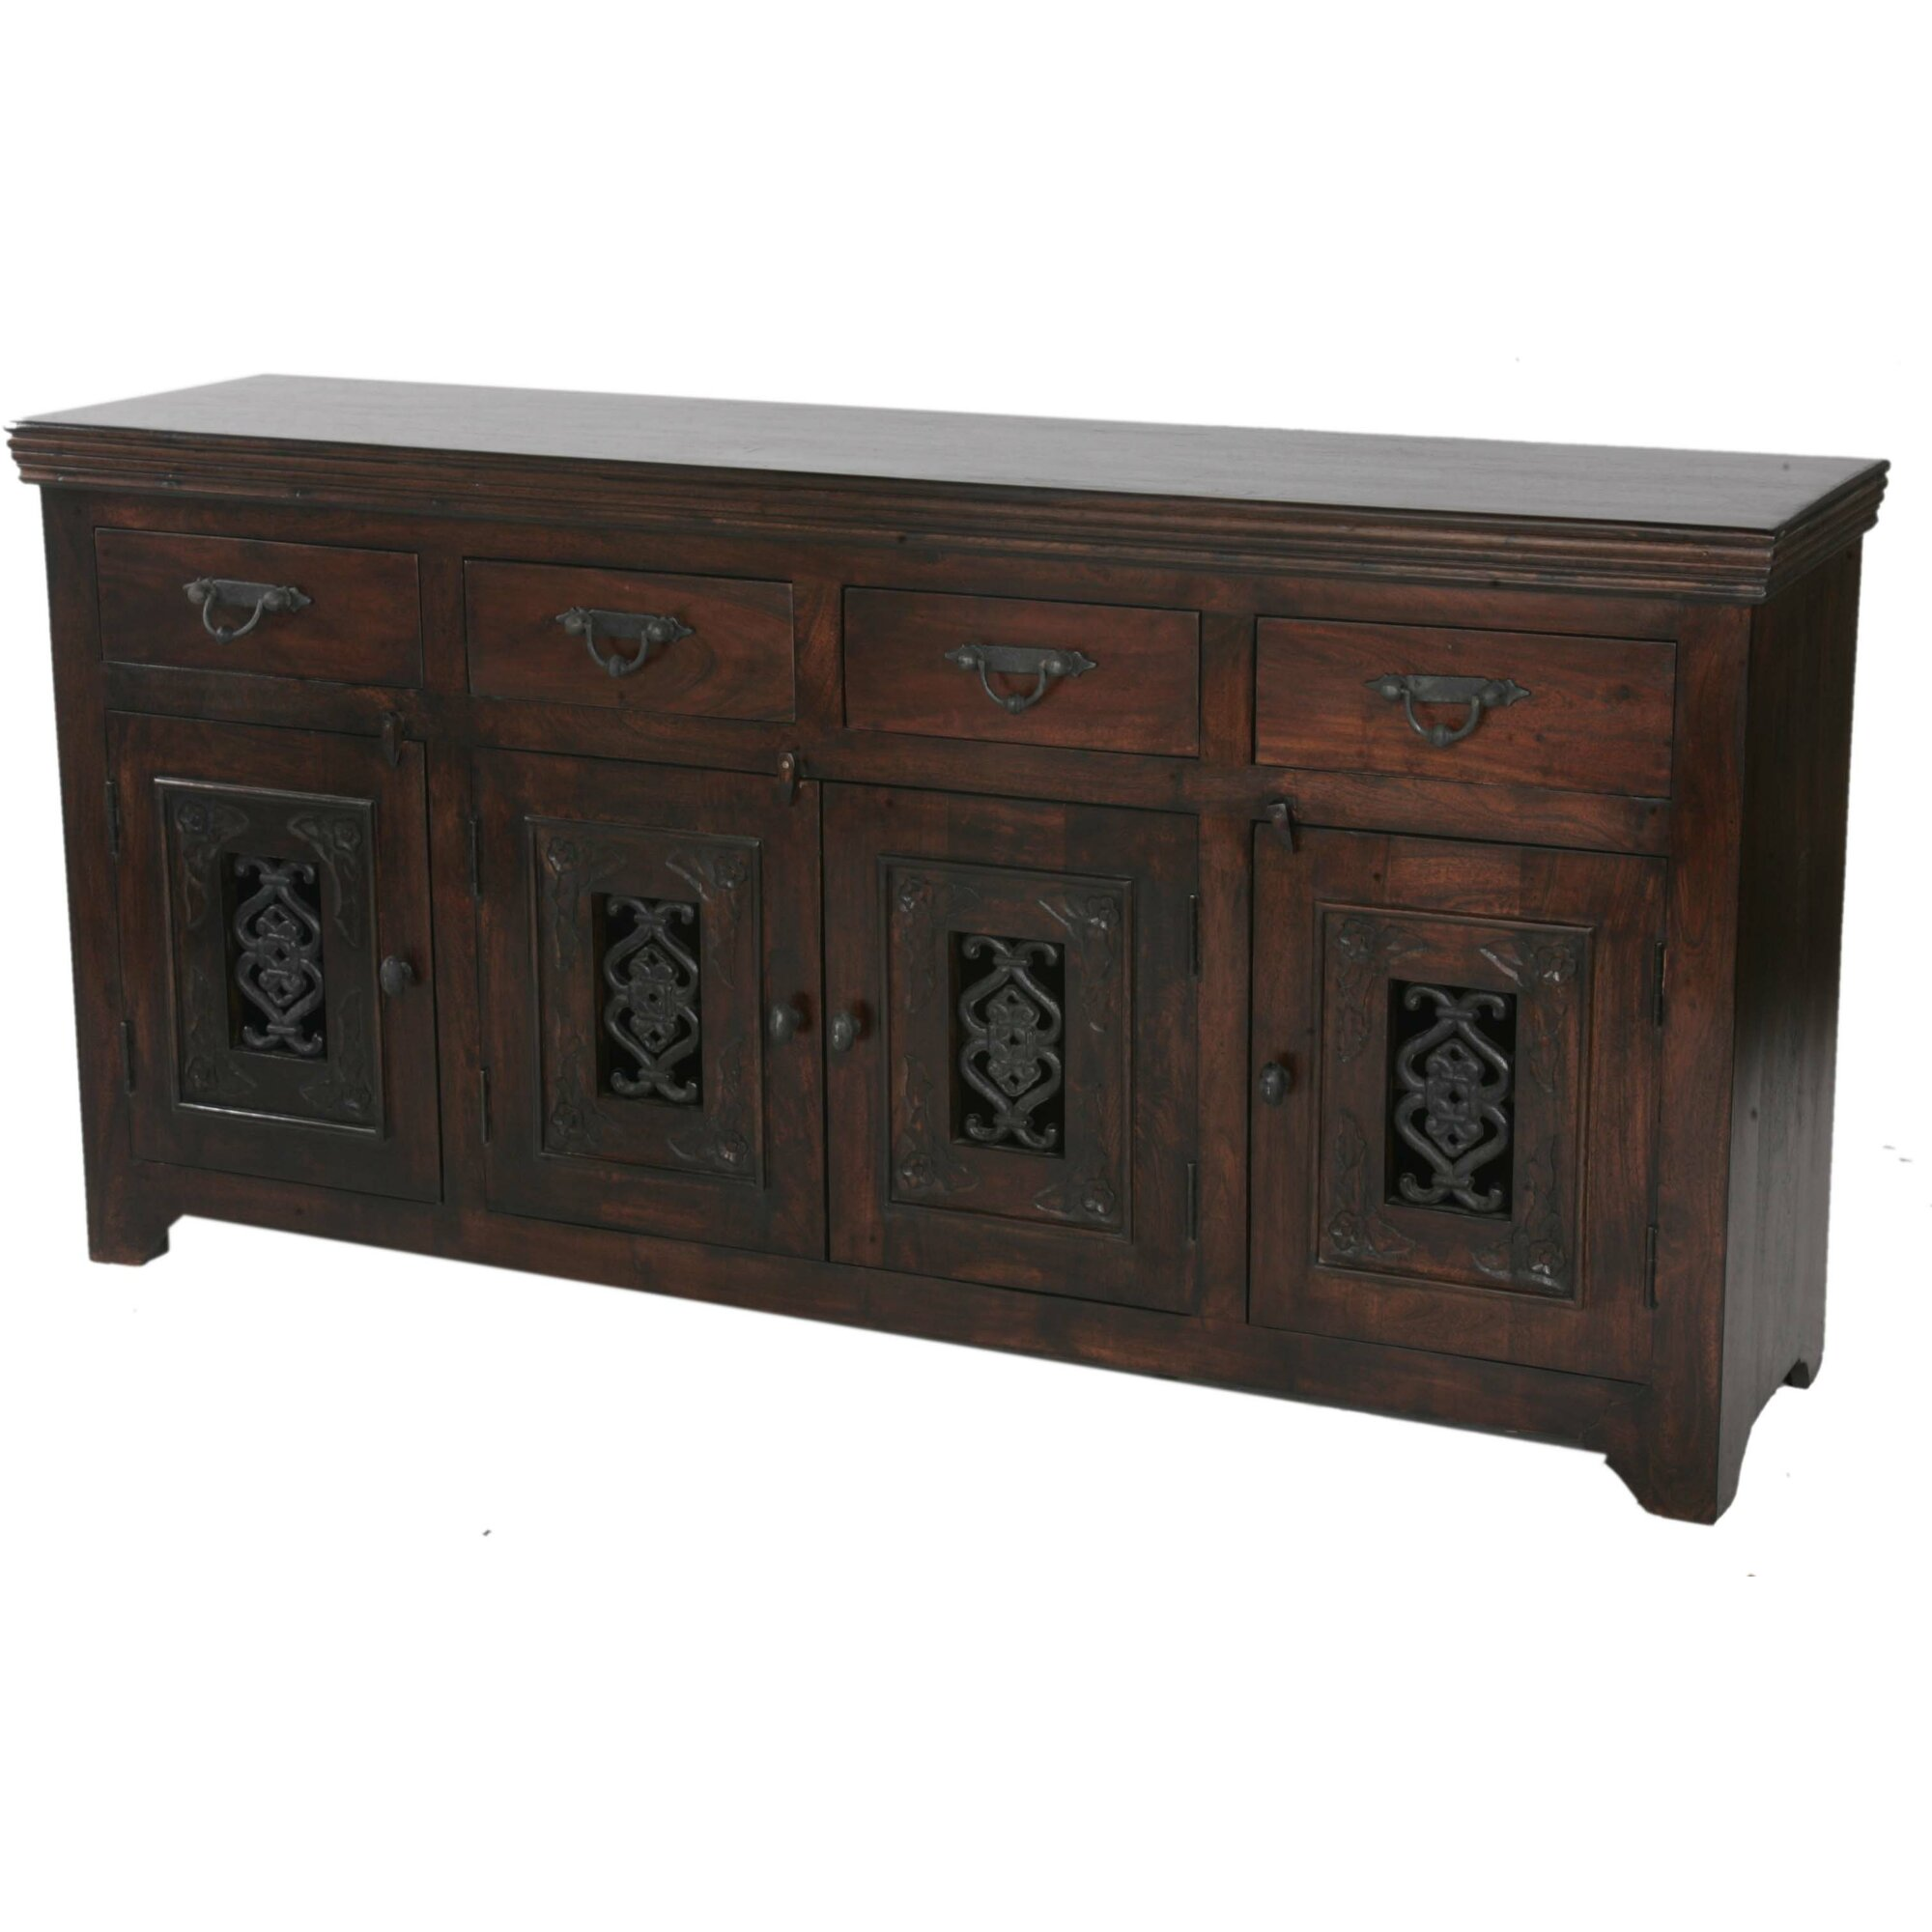 moti furniture jali sideboard reviews wayfair. Black Bedroom Furniture Sets. Home Design Ideas